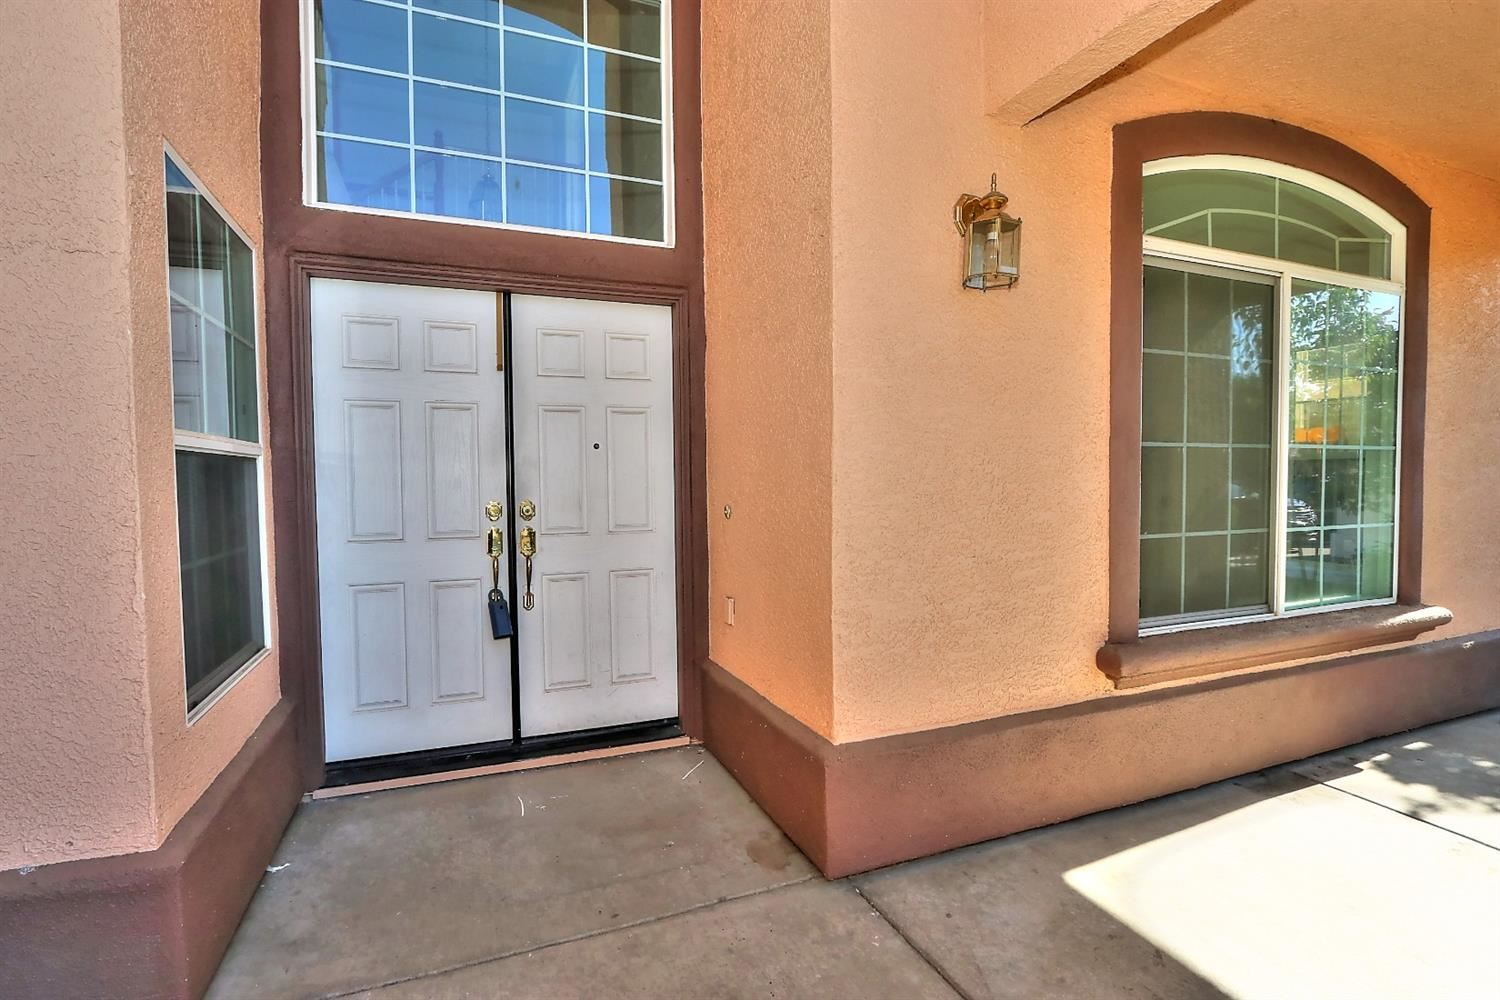 Photo of 8756 Morning Glory Way, Elk Grove, CA 95624 (MLS # 221046336)